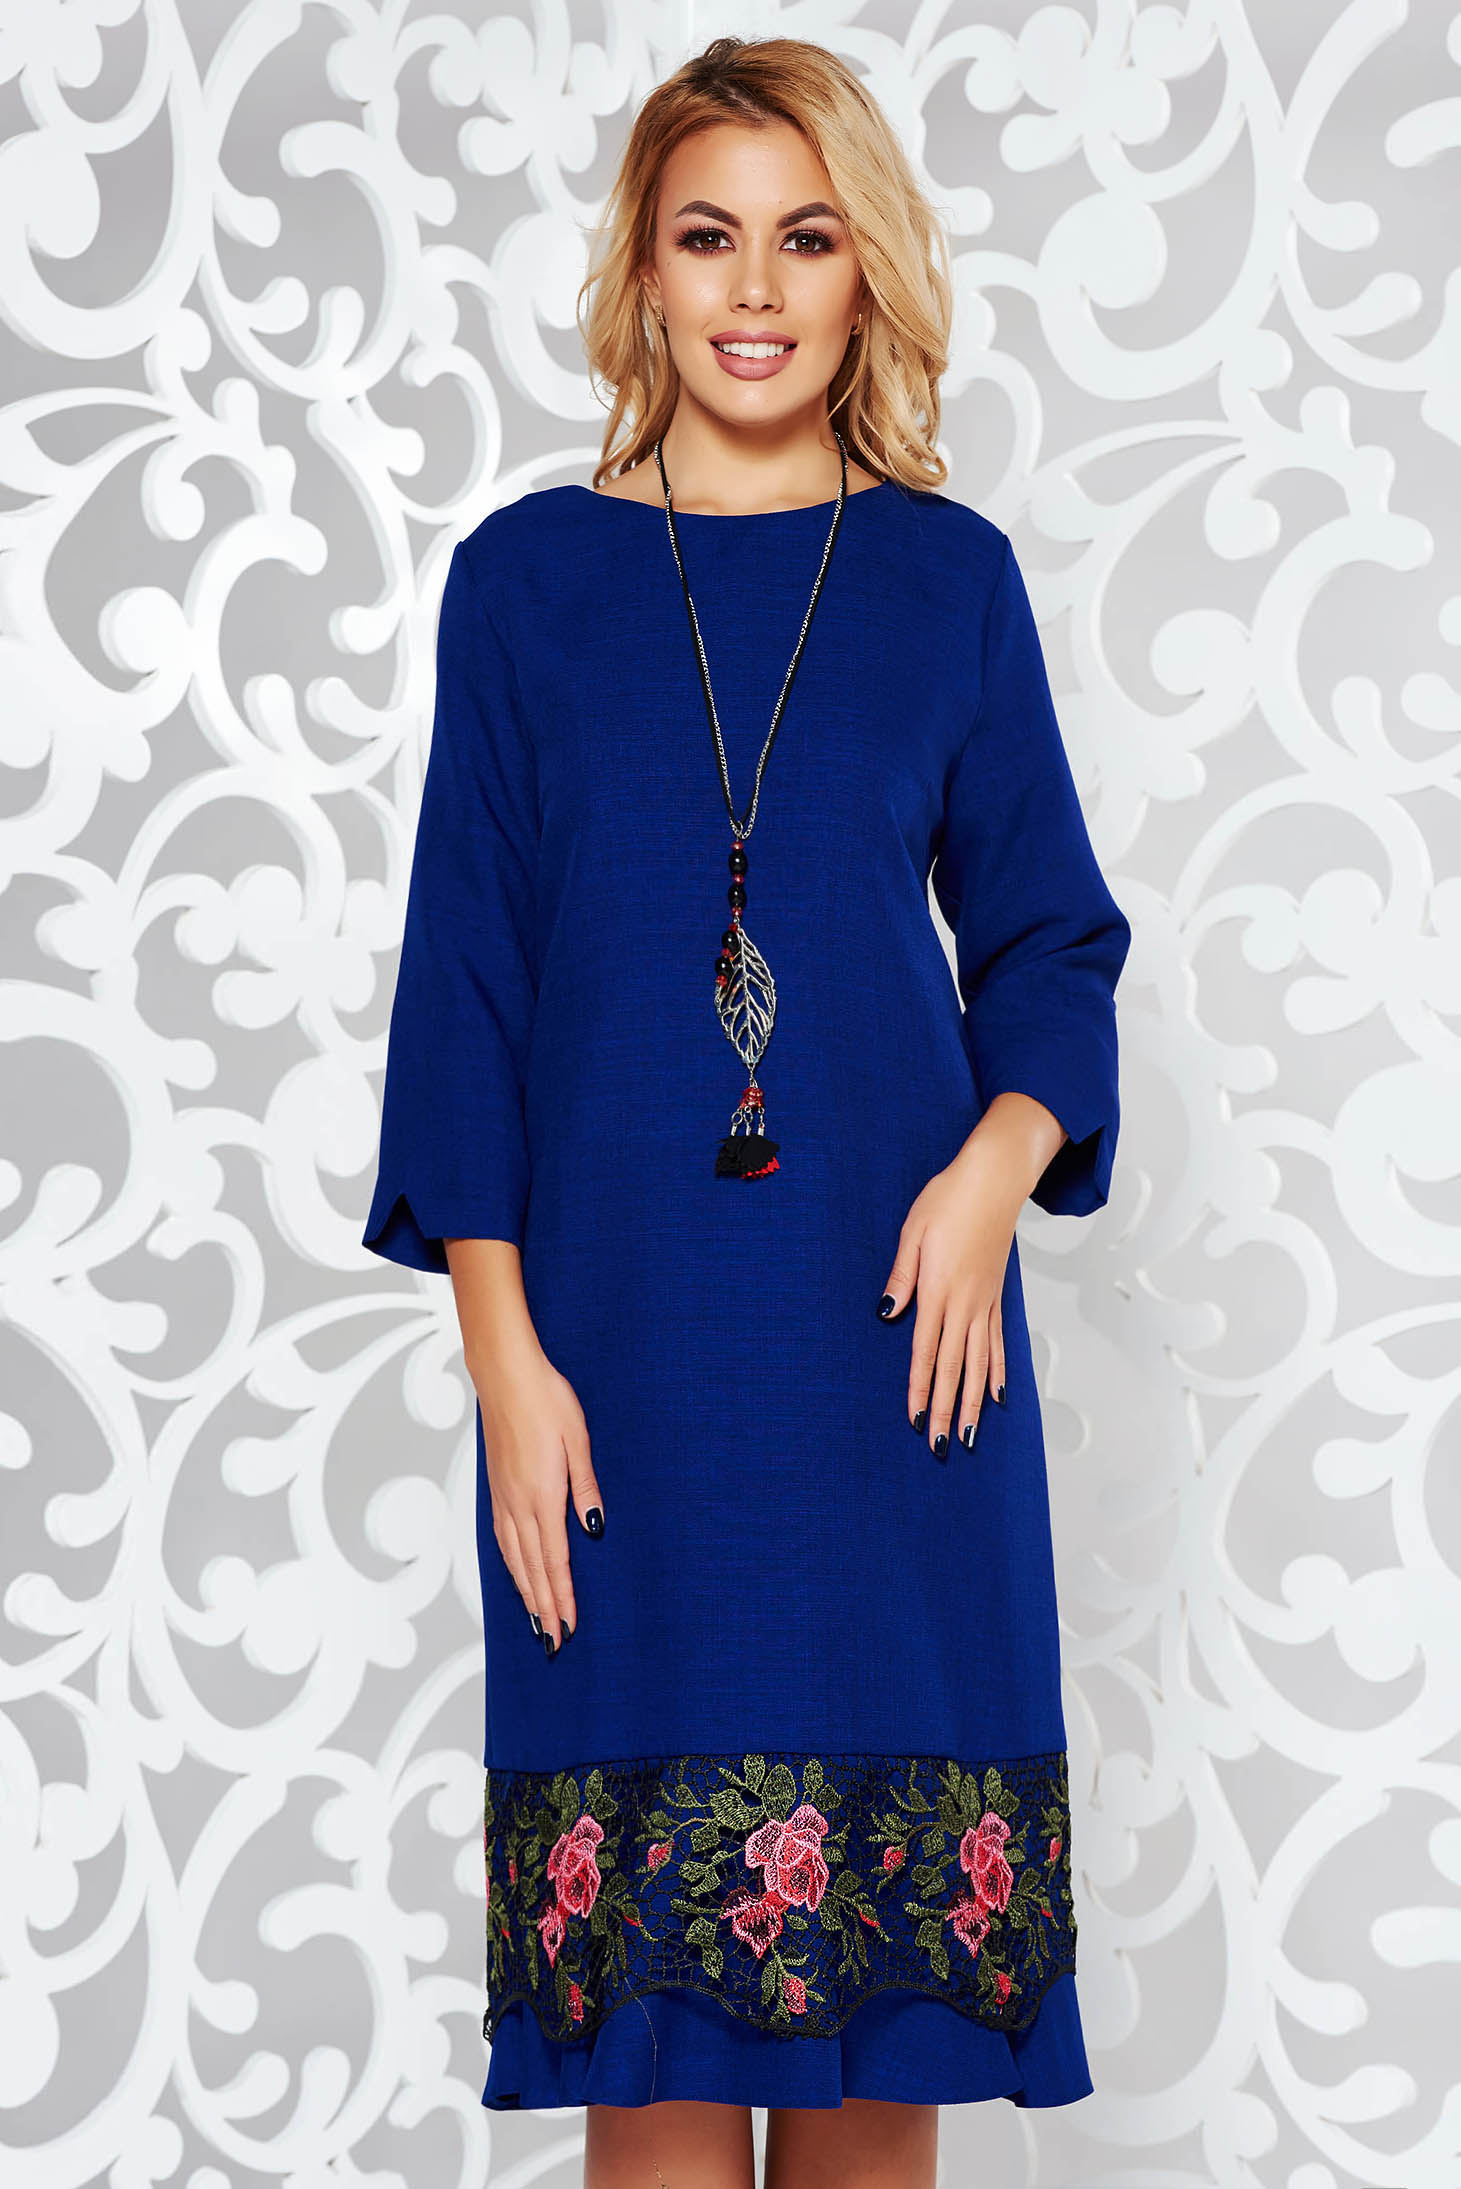 Blue elegant flared dress slightly elastic fabric with lace details accessorized with chain